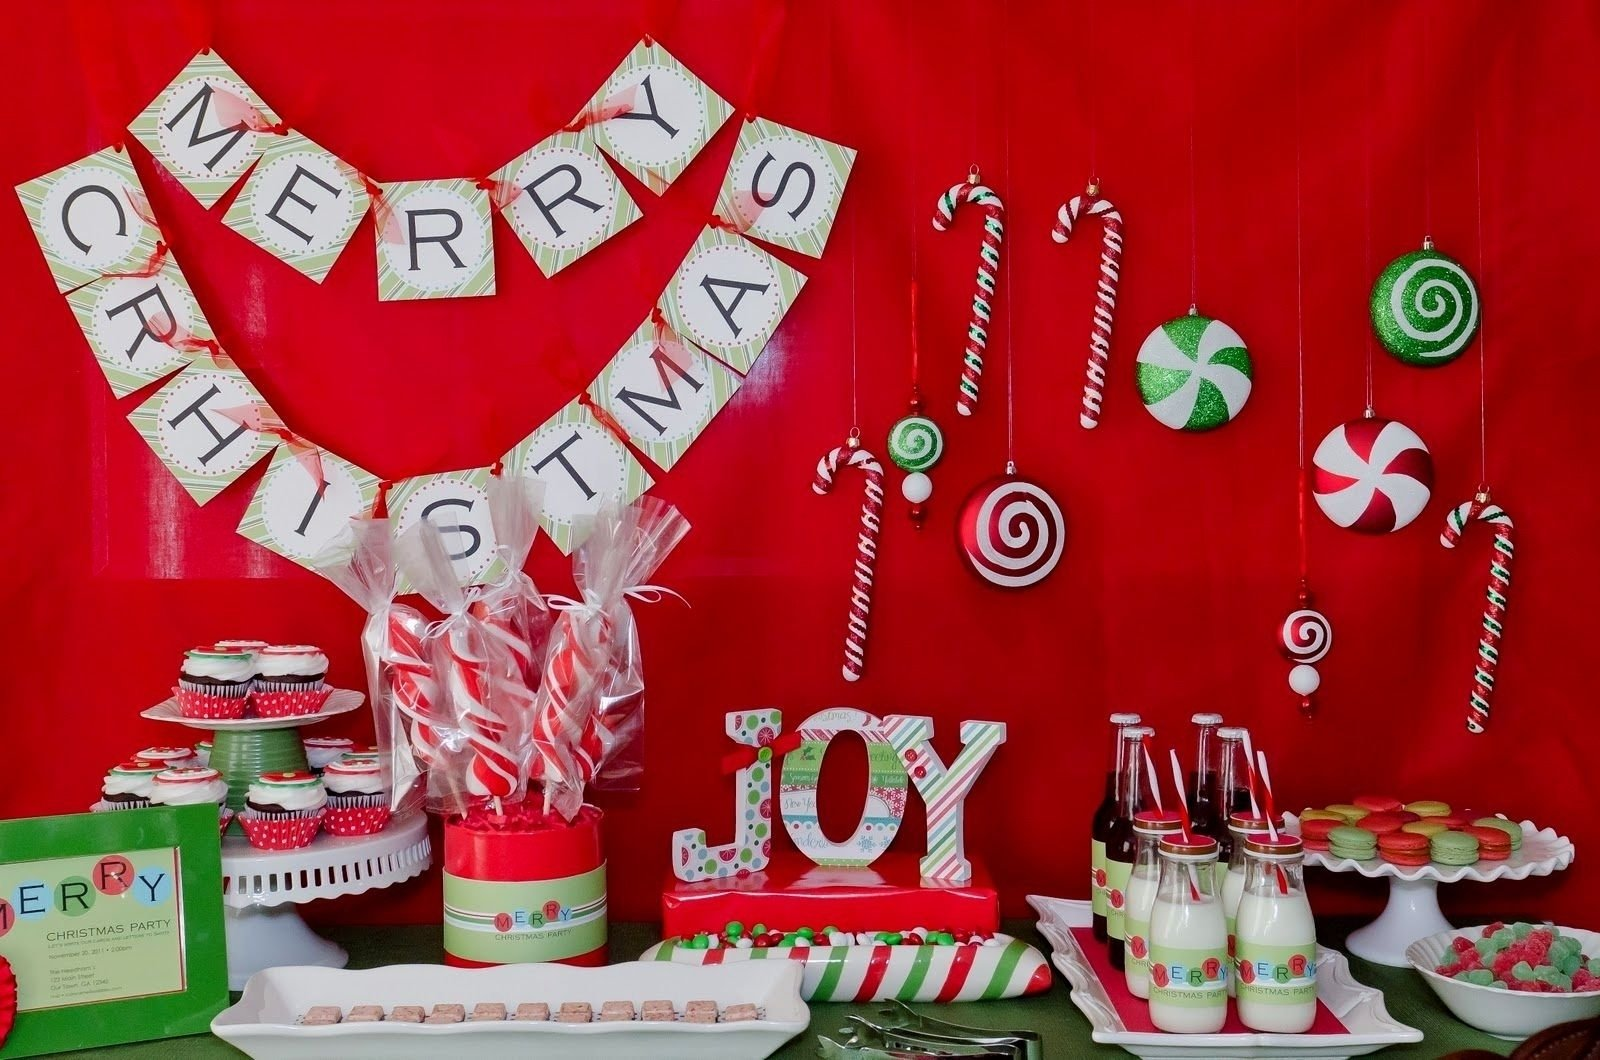 10 Attractive Christmas Party Theme Ideas For Adults christmas party decorations ideas diy free design templates 2020